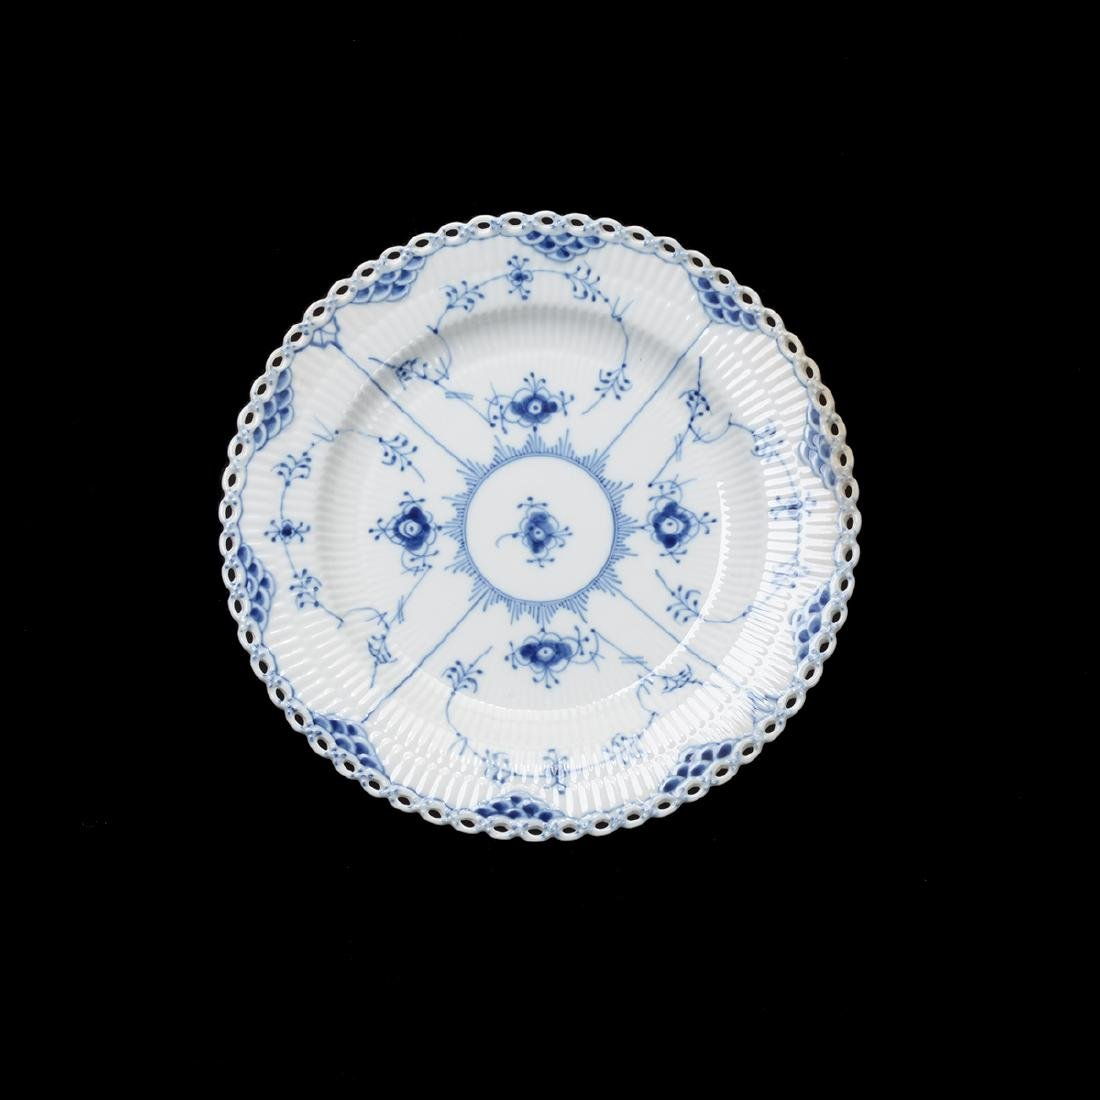 Royal Copenhagen Fluted Blue Lace China Set (31 Pieces) - 7